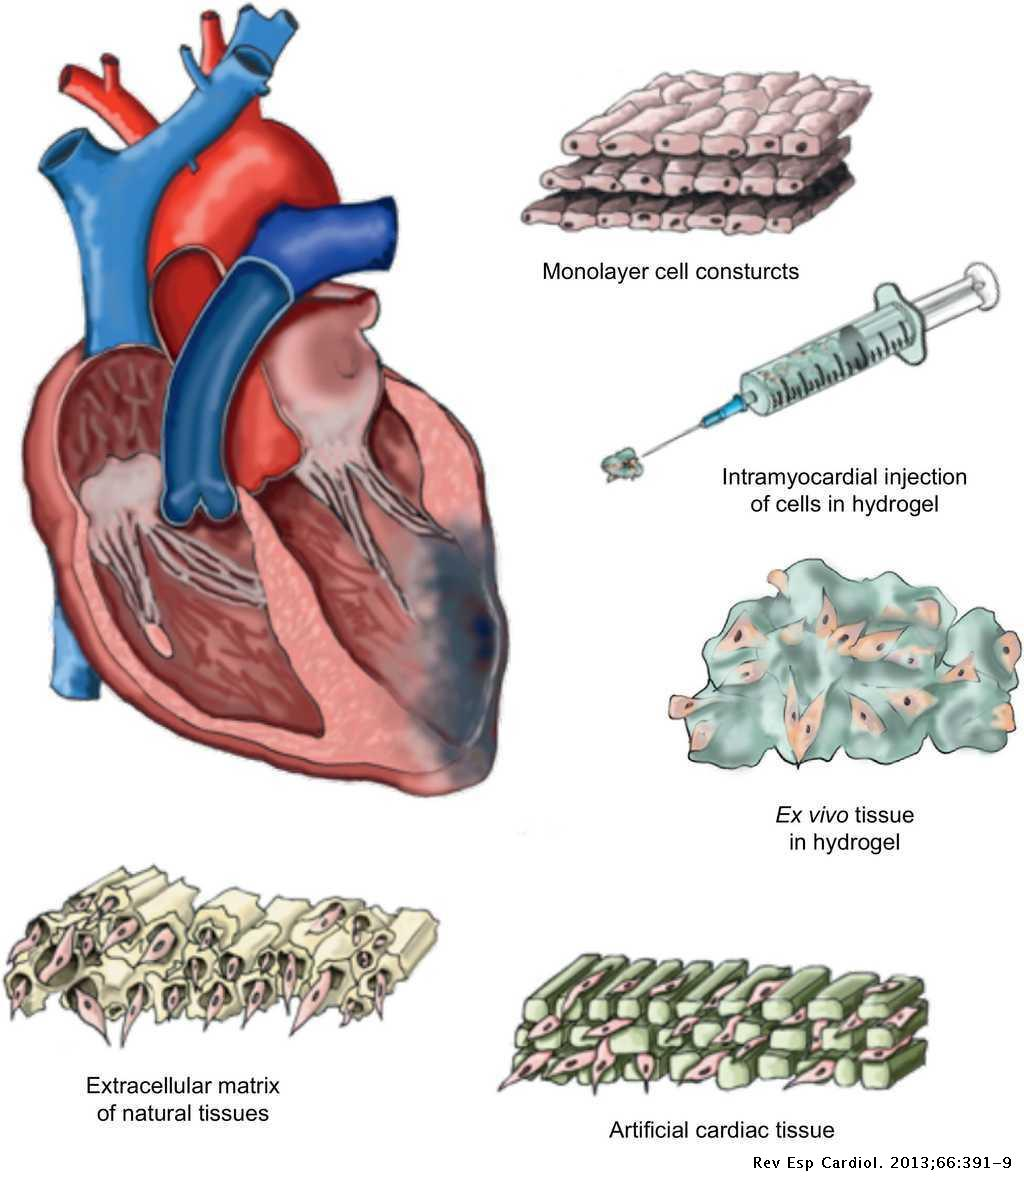 Cardiac Tissue Engineering and the Bioartificial Heart